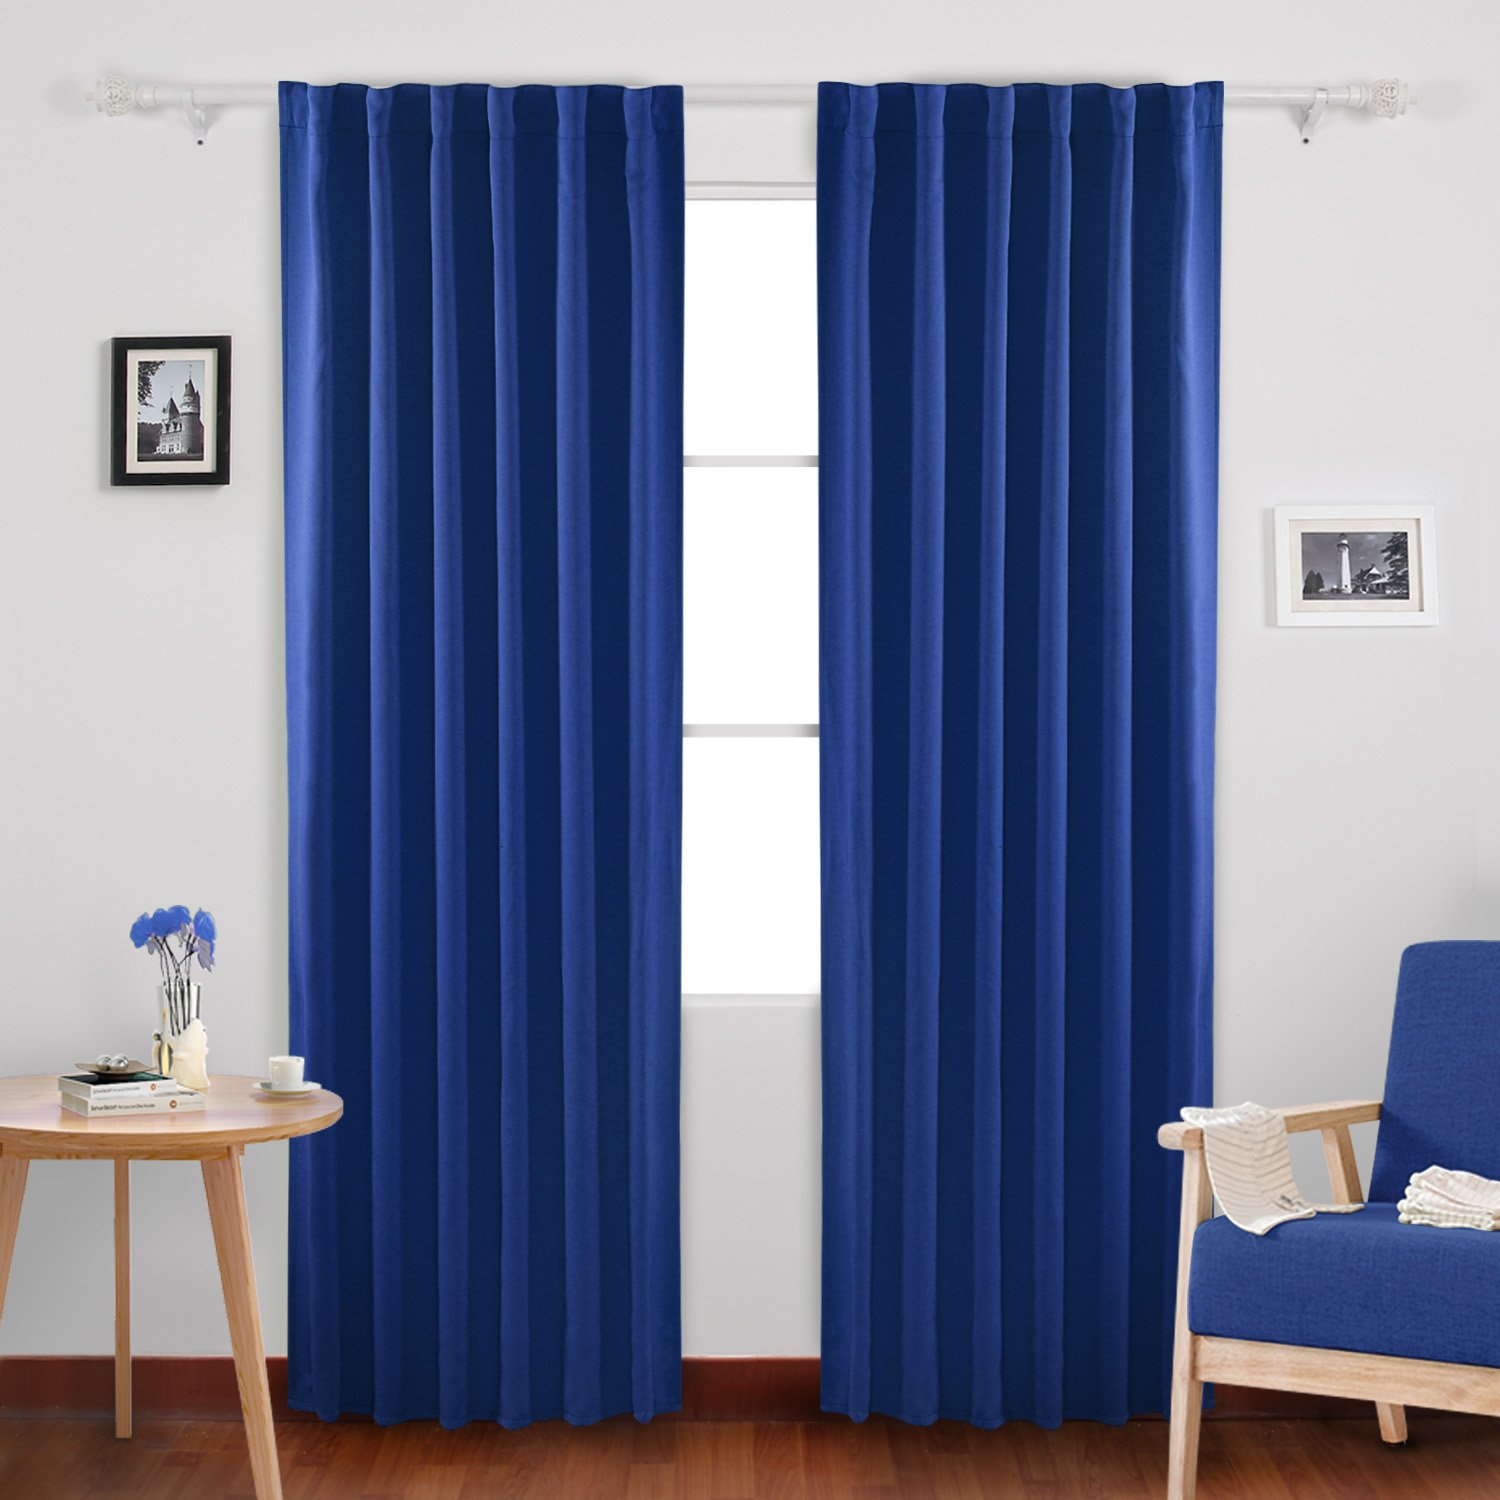 Cheap Blackout Curtains 84, Find Blackout Curtains 84 Deals Within Solid Insulated Thermal Blackout Curtain Panel Pairs (View 24 of 30)